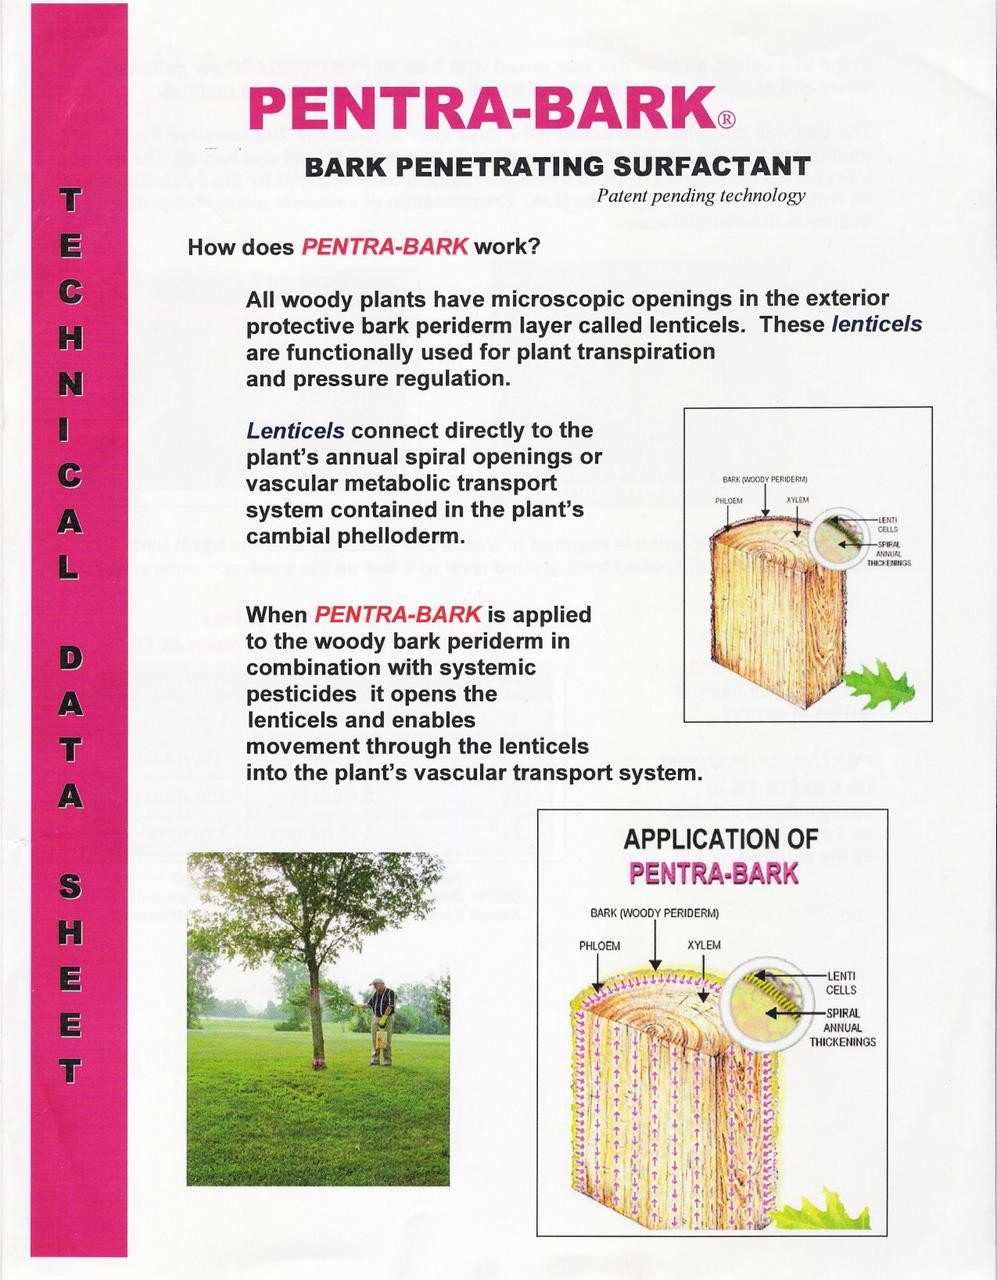 Reliant + Pentra-Bark Sudden Oak Death Treatment Package 1 Gallon/8oz (Agri-Fos/Garden Phos)